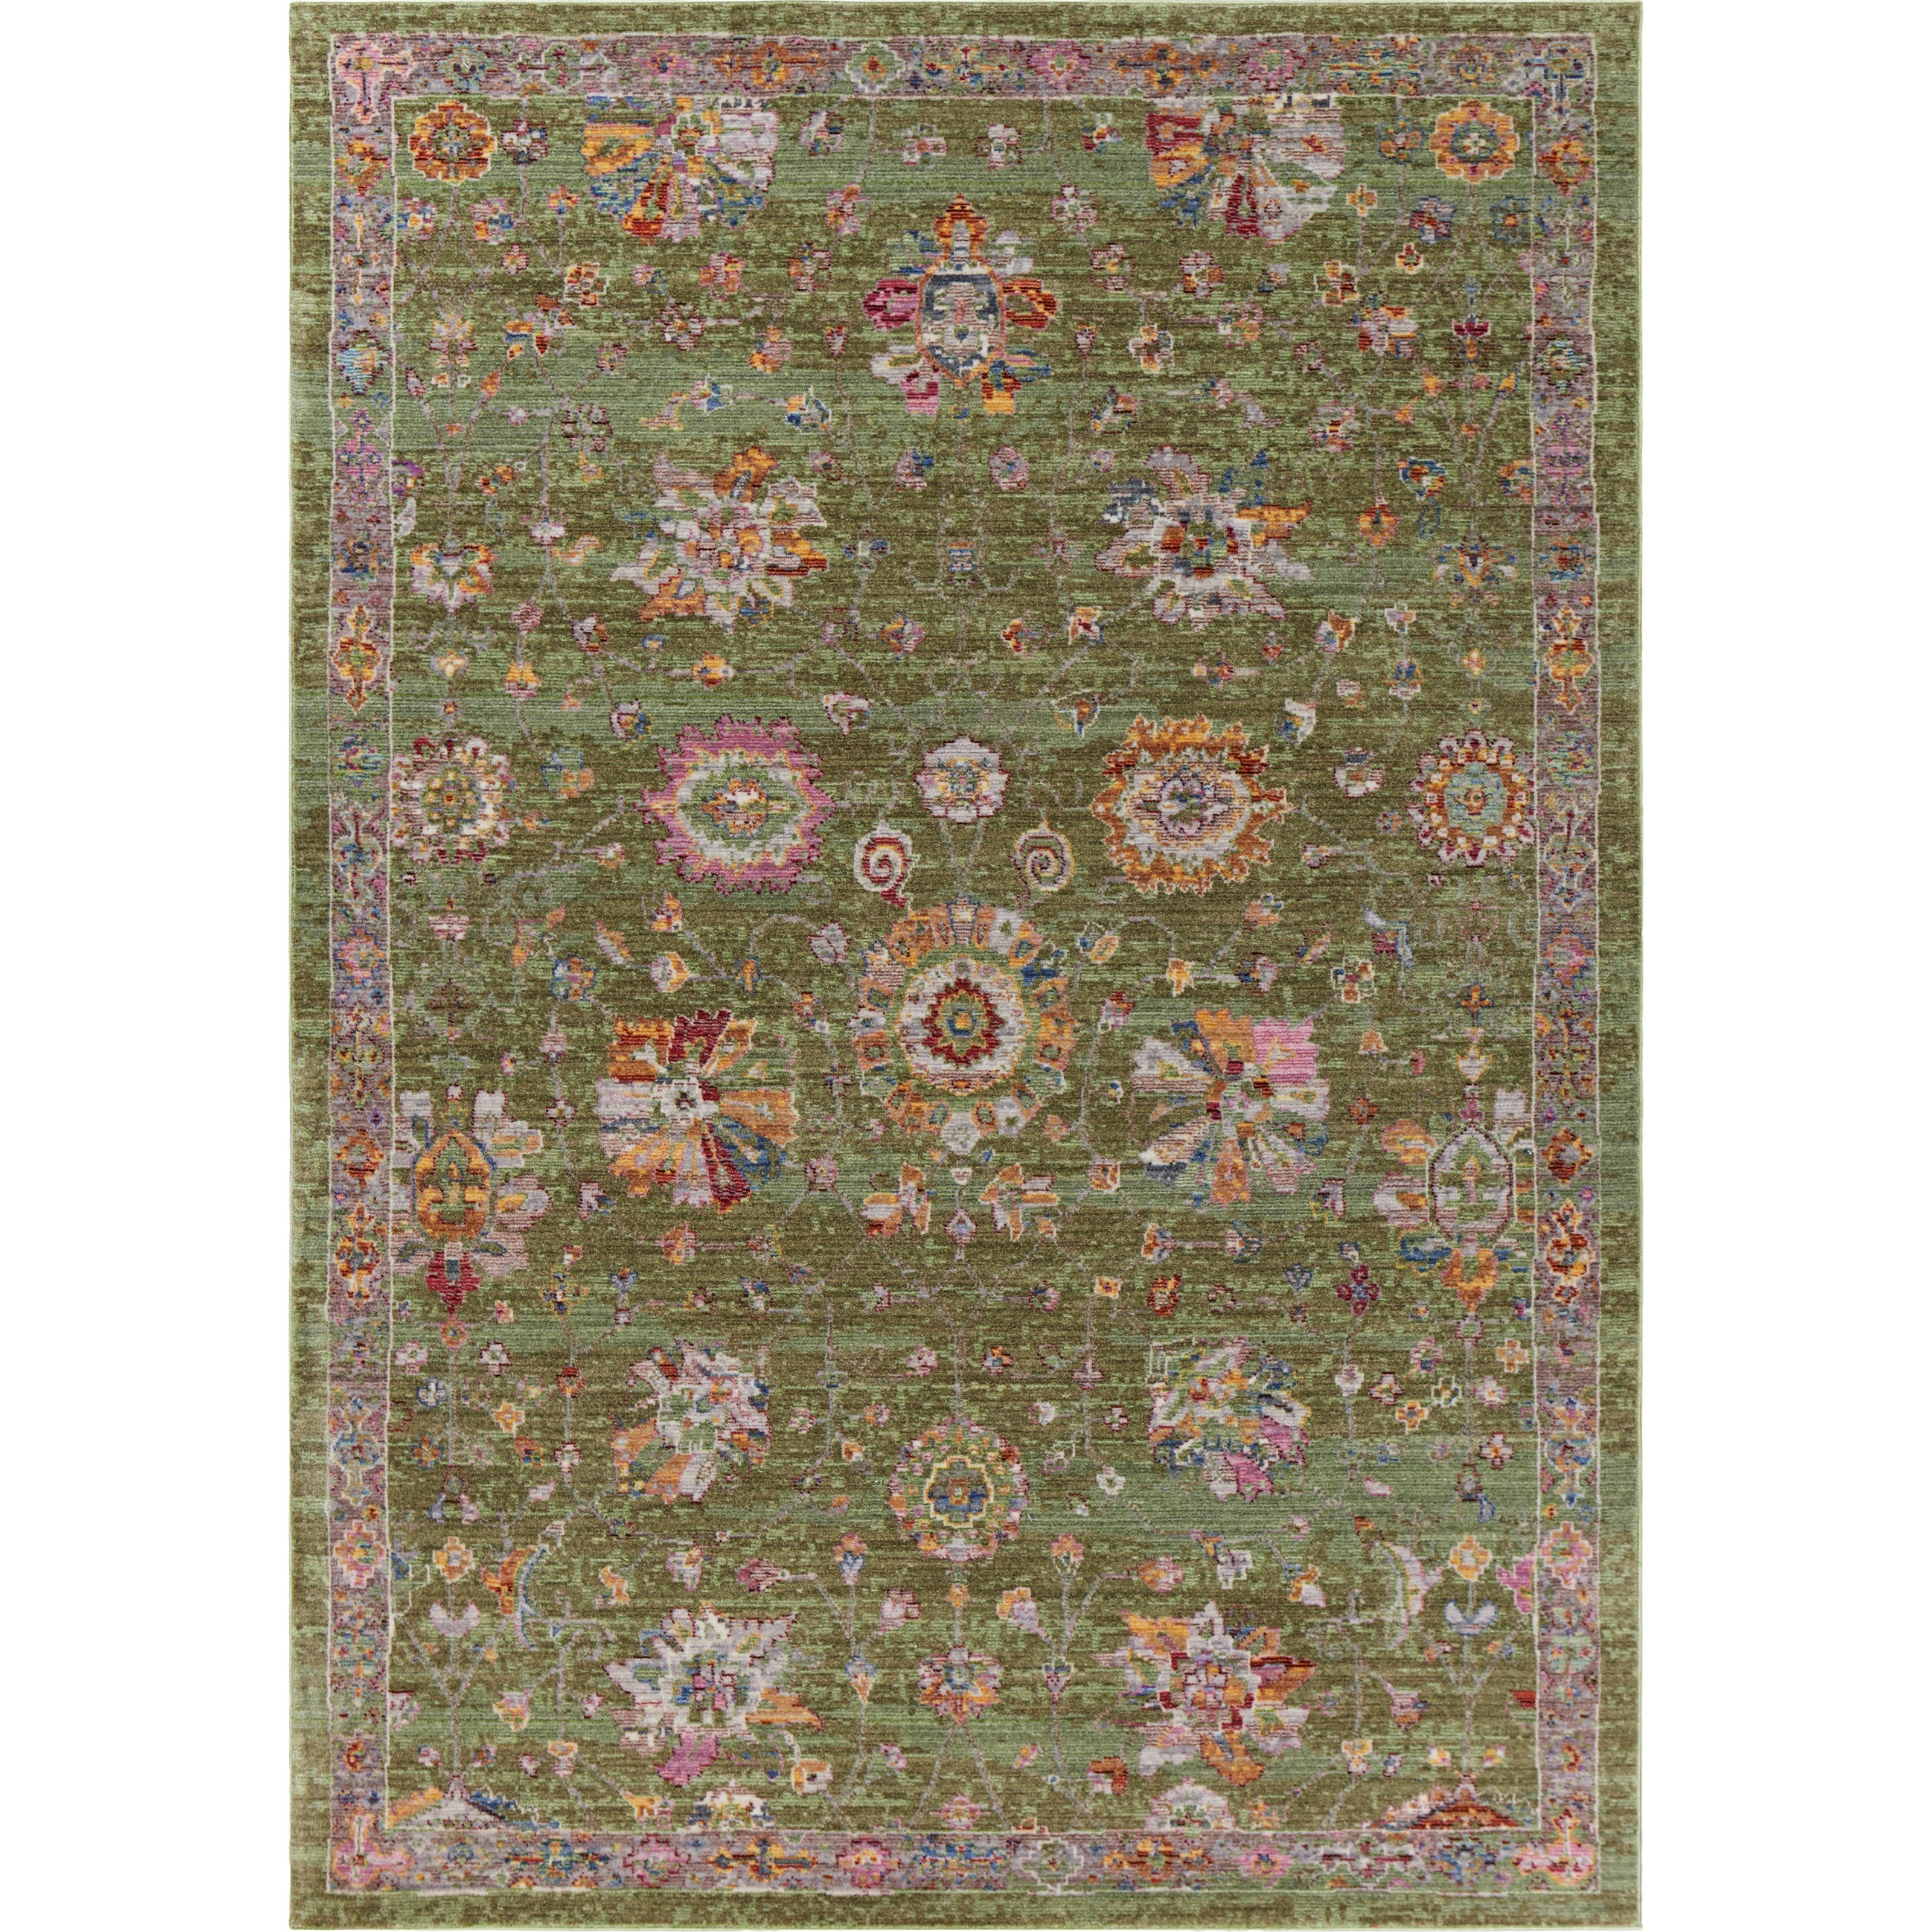 Ashton 13' X 9' Area Rug by Kas at Zak's Home